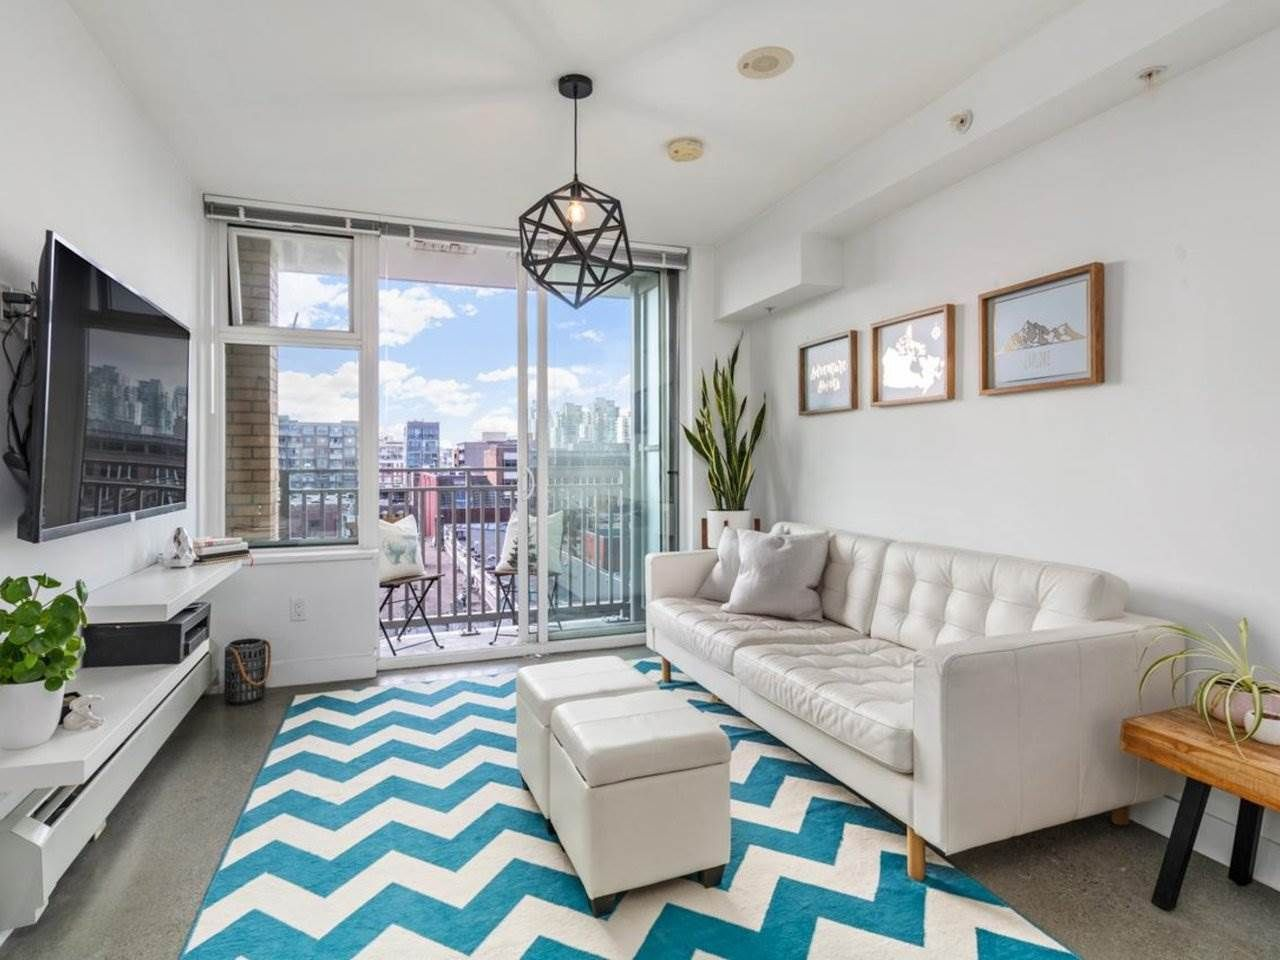 """Main Photo: 605 231 E PENDER Street in Vancouver: Strathcona Condo for sale in """"FRAMEWORK"""" (Vancouver East)  : MLS®# R2525315"""